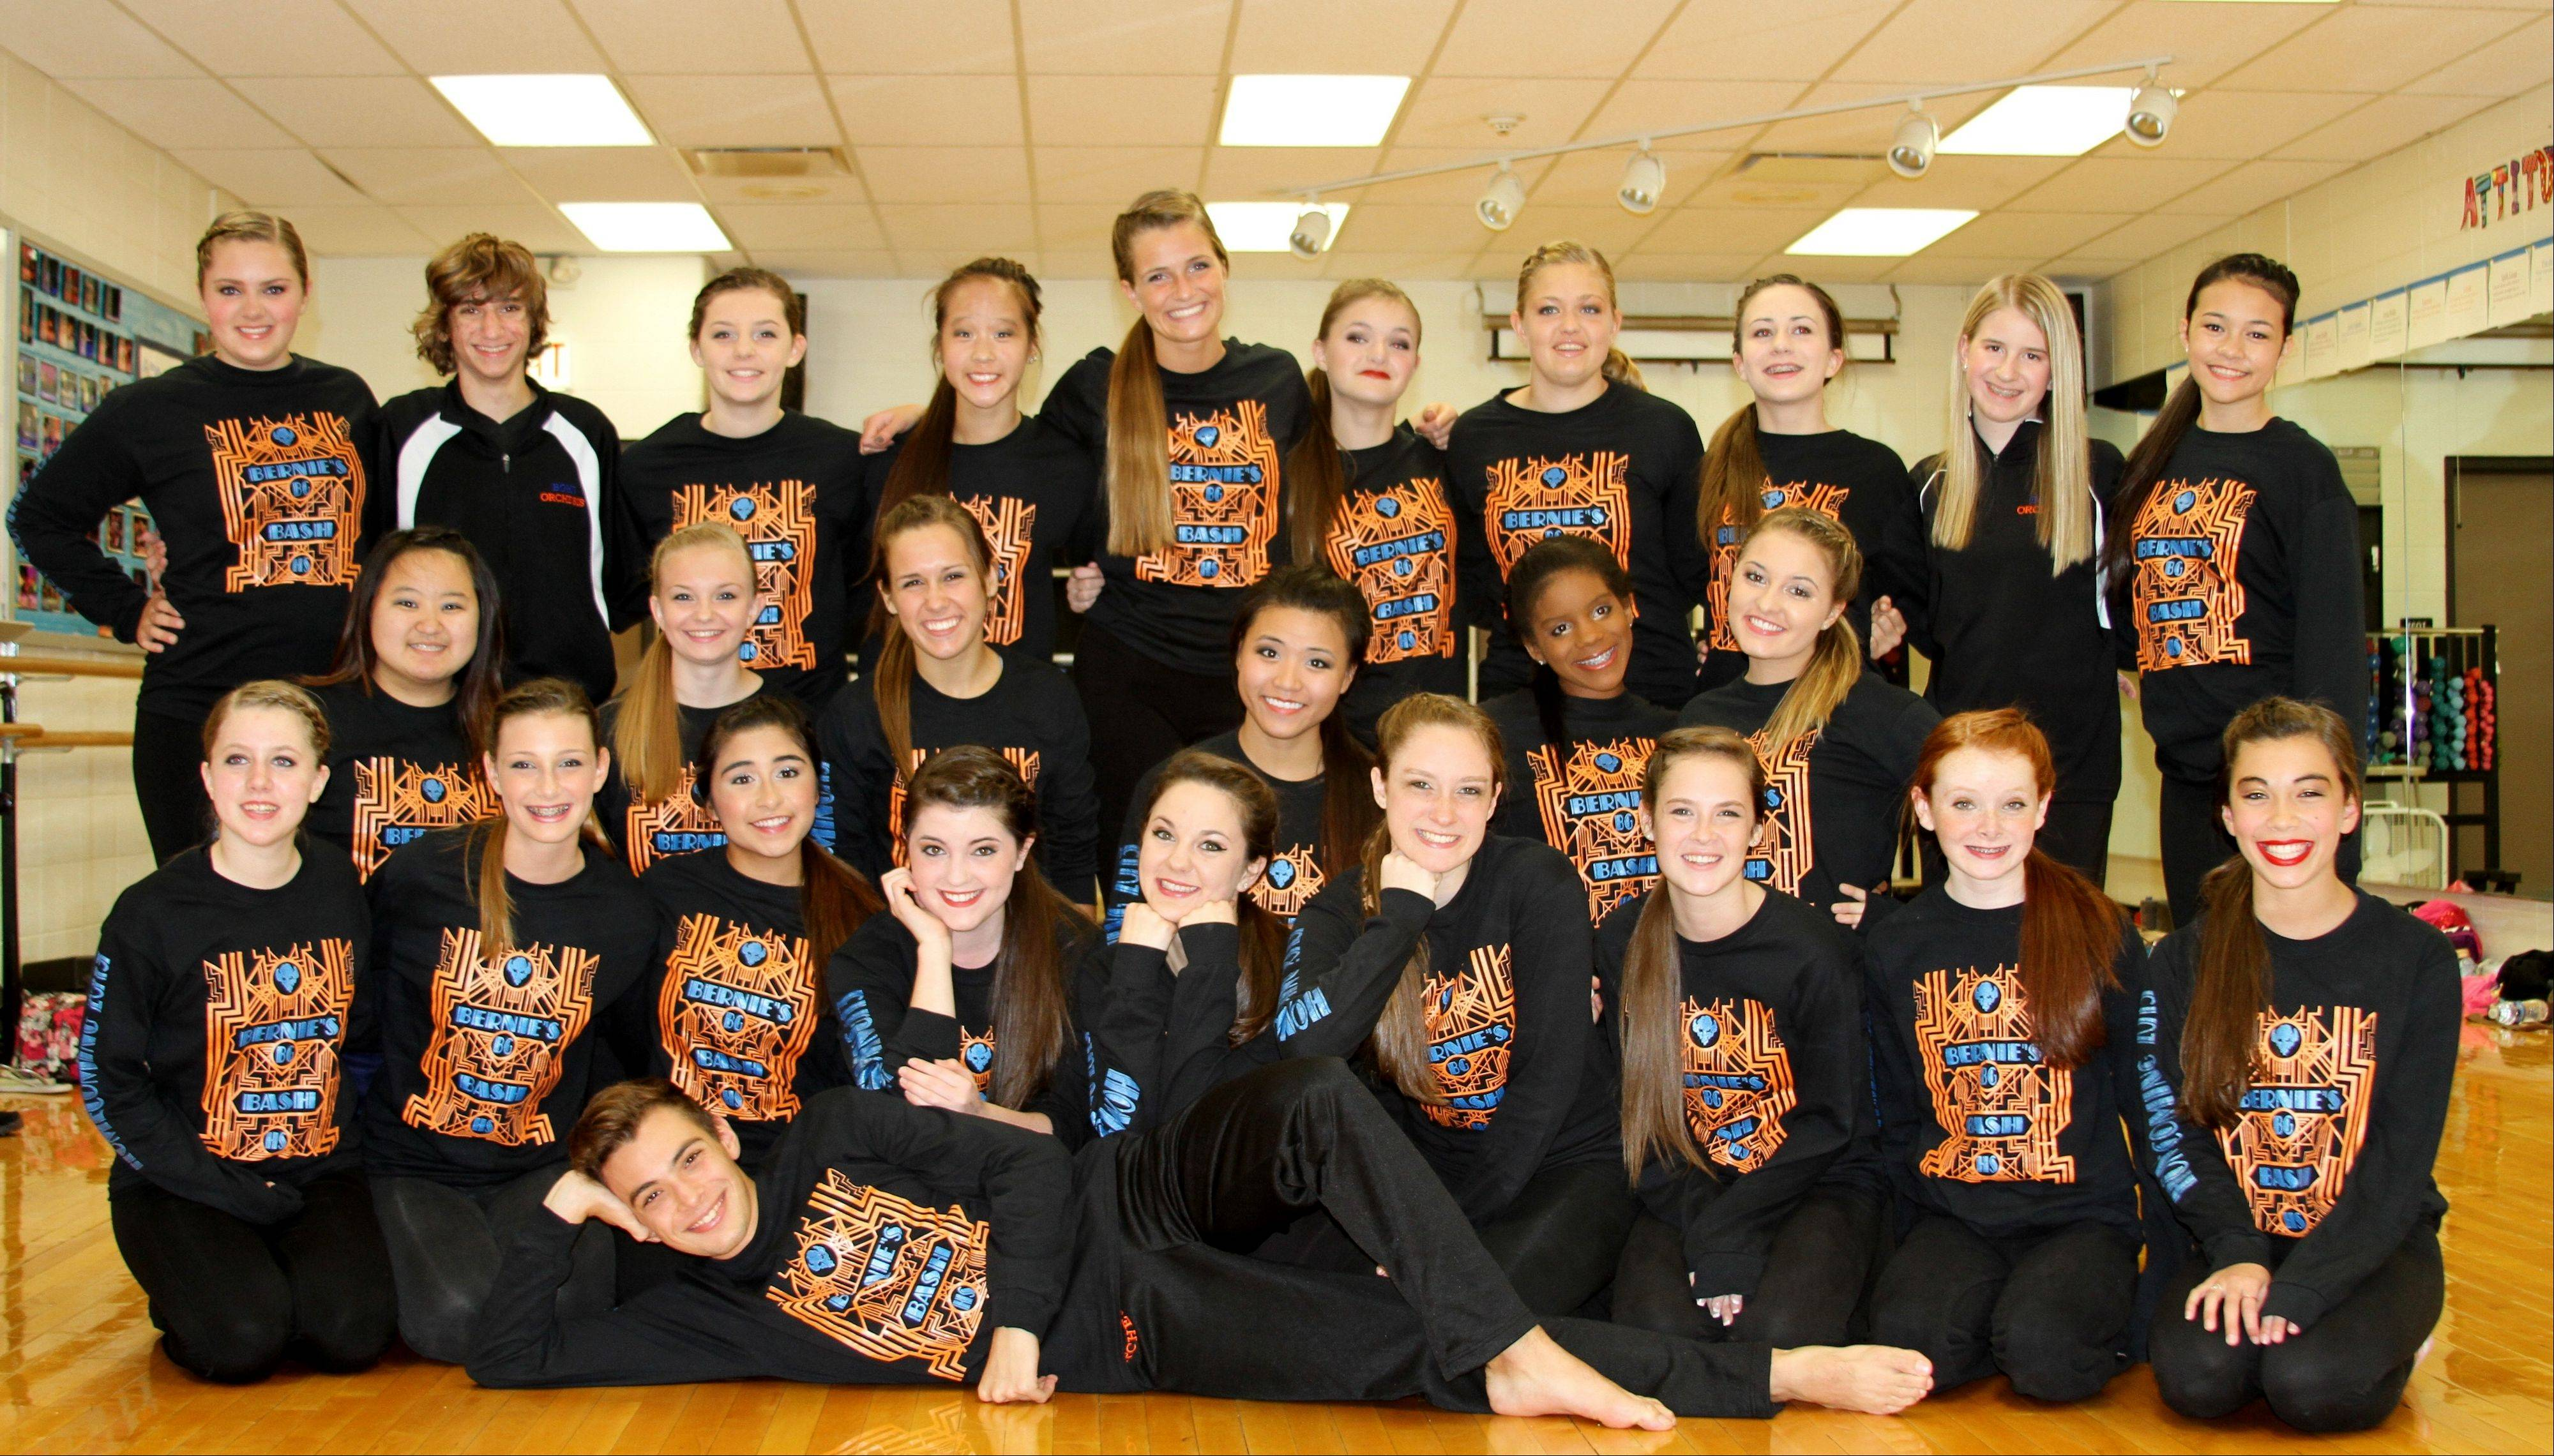 Buffalo Grove High School Orchesis presents its 2014 show on Thursday, Feb. 6, through Saturday, Feb. 8. For information, (847) 718-4353.